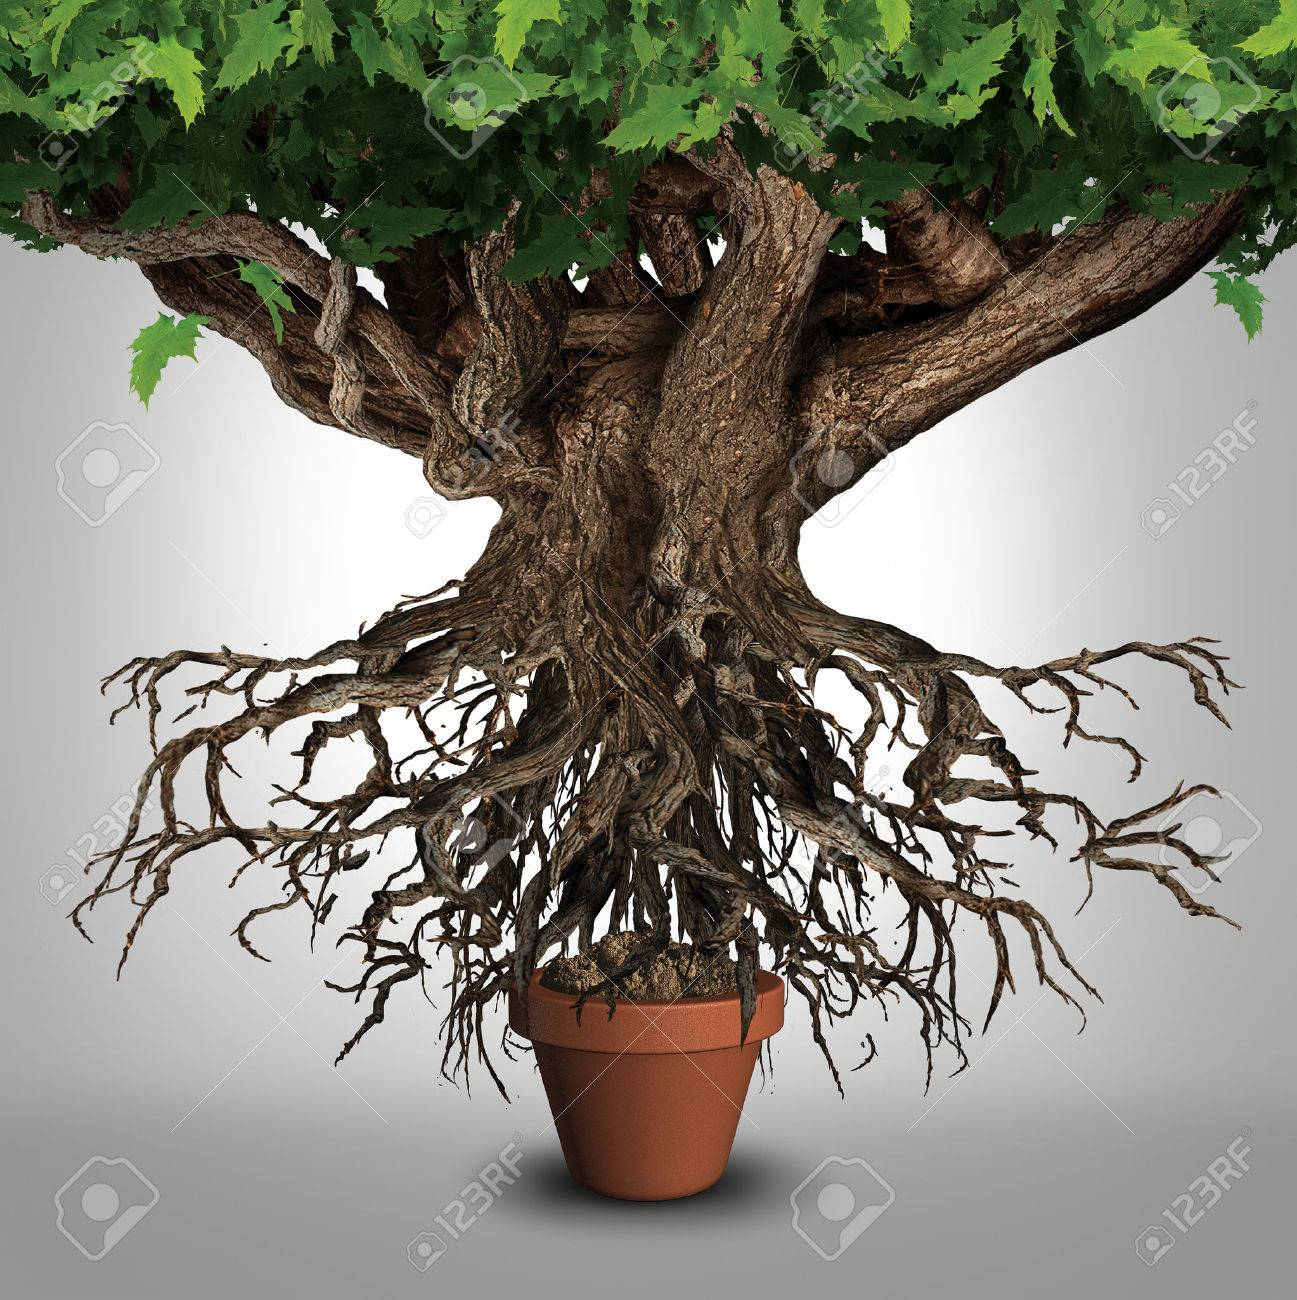 Business expansion and too big to manage business that does not fit metaphor or expanding outgrowing your home concept as a large tree with a small plant pot as an icon for managing growth success - 51757433